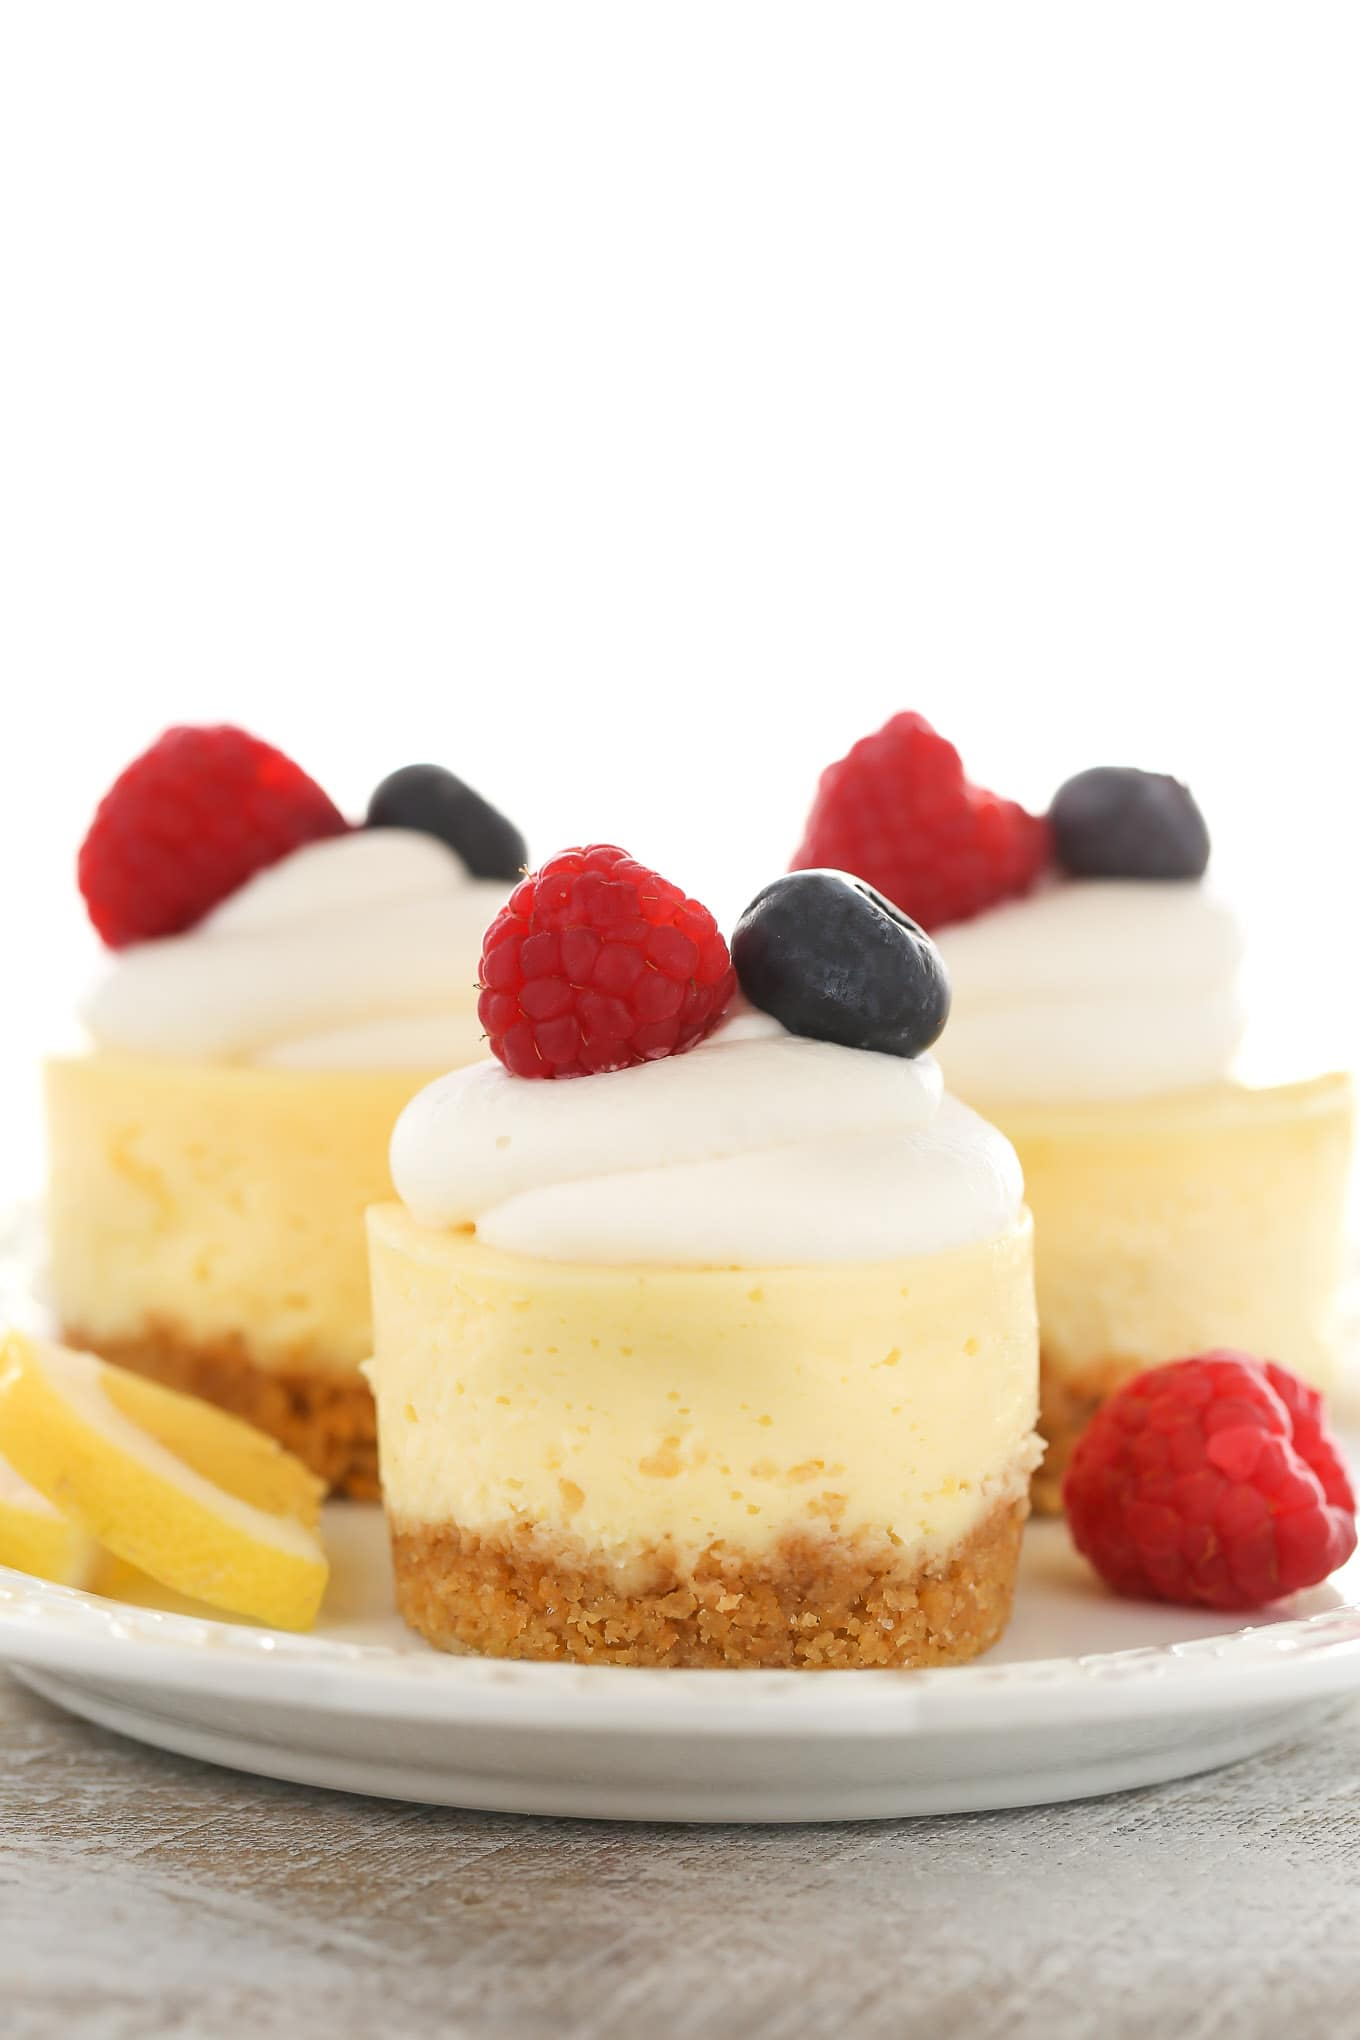 A side view of three lemon cheesecake bites on a white plate. Each is topped with whipped cream and fresh berries.